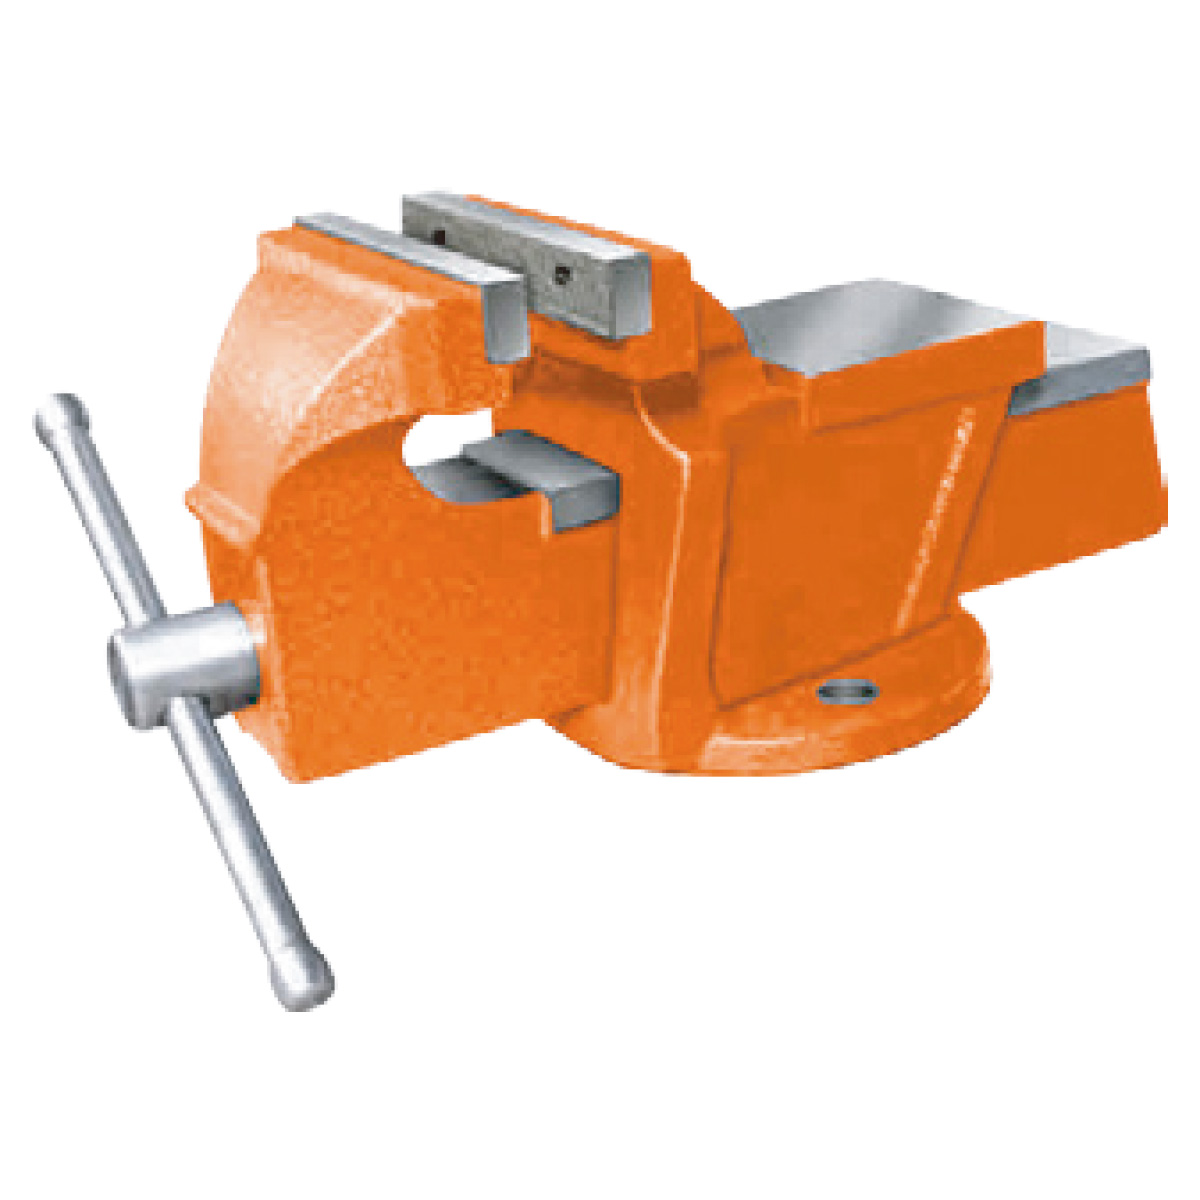 LIGHT DUTY FIXED BENCH VISE